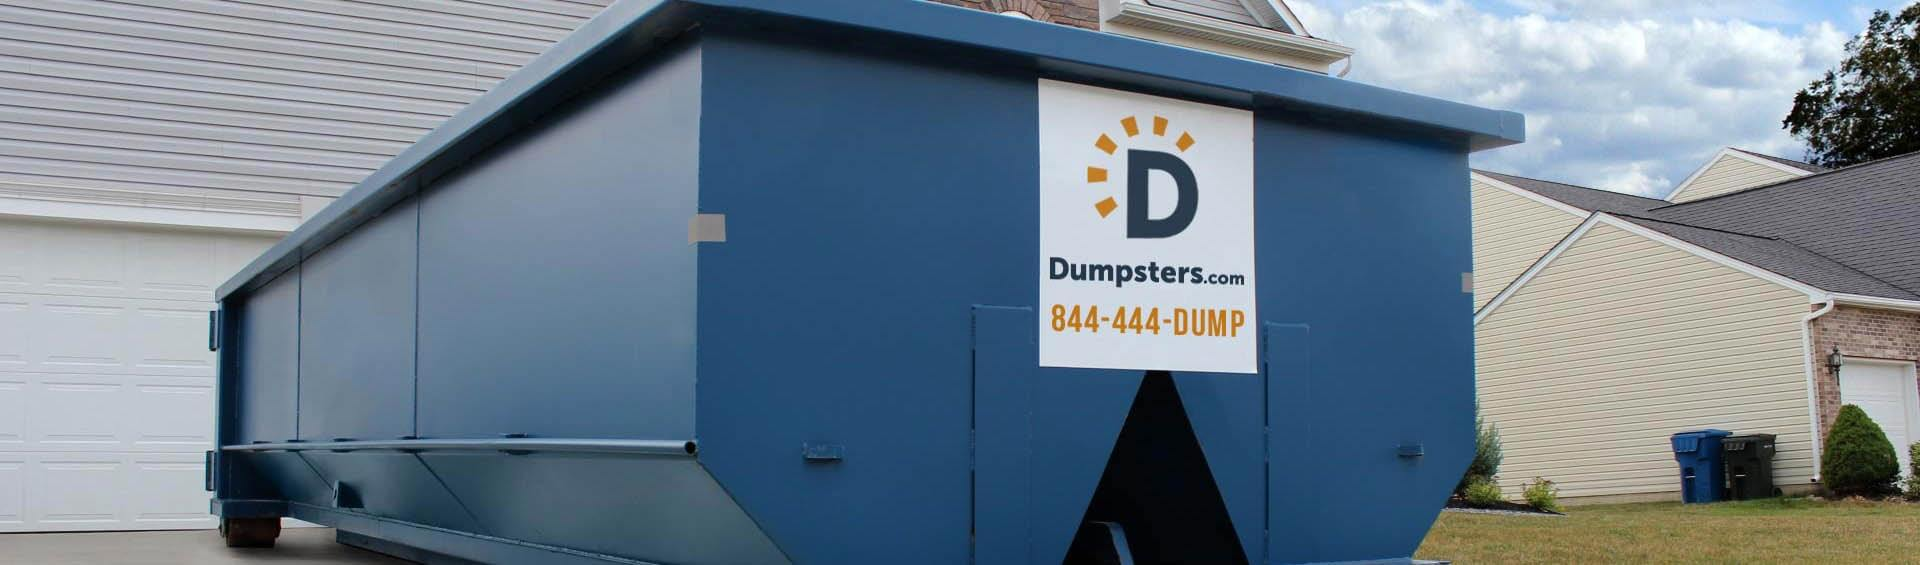 roll off dumpster in residential driveway